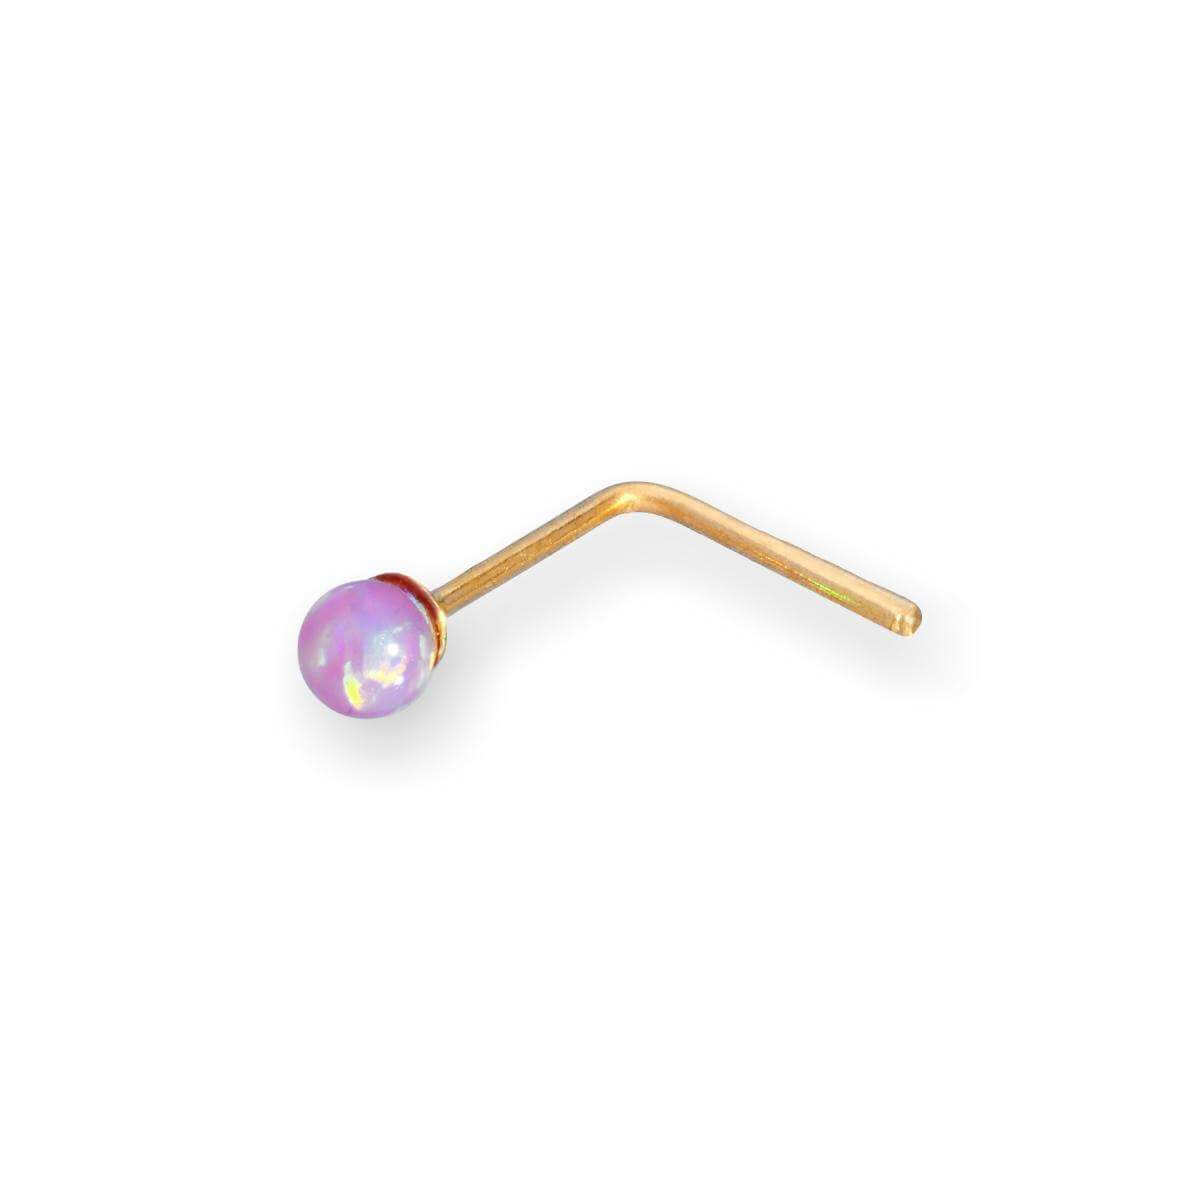 9ct Gold 2mm Pink Opal Stone Nose Stud